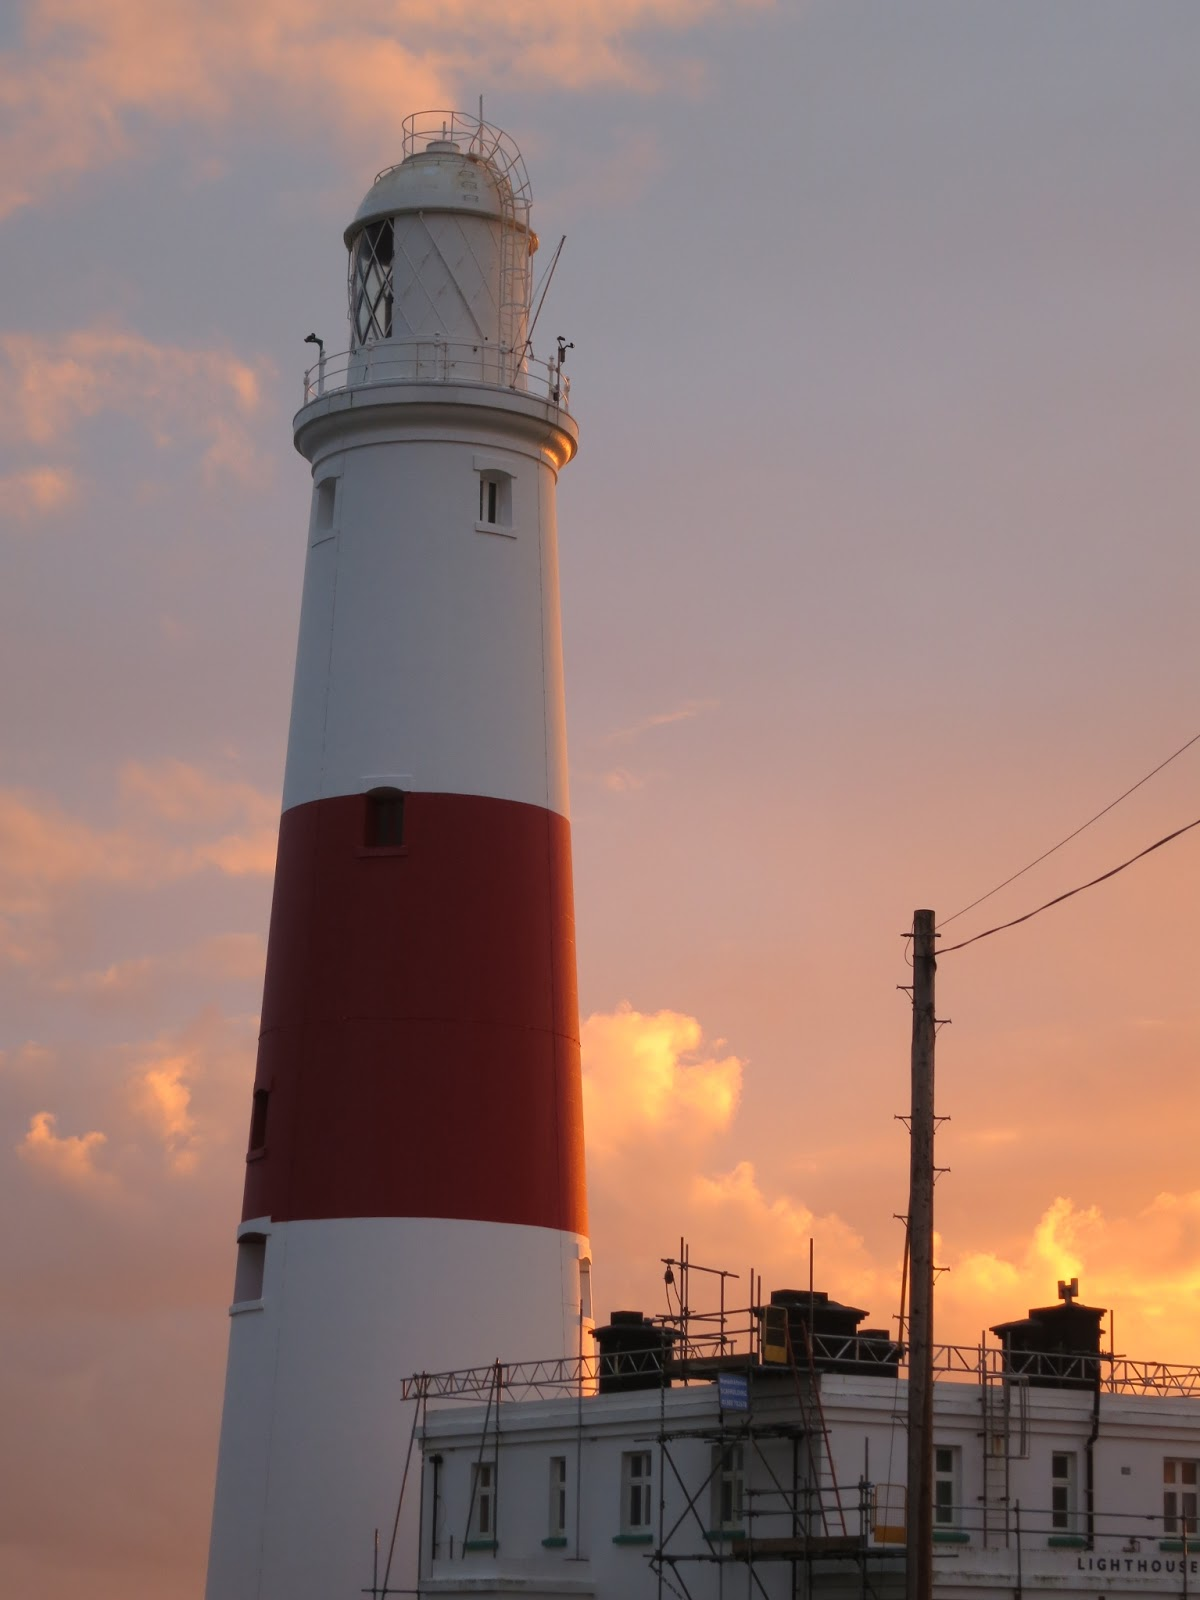 Portland Bill Lighthouse against sugar almond evening sky.